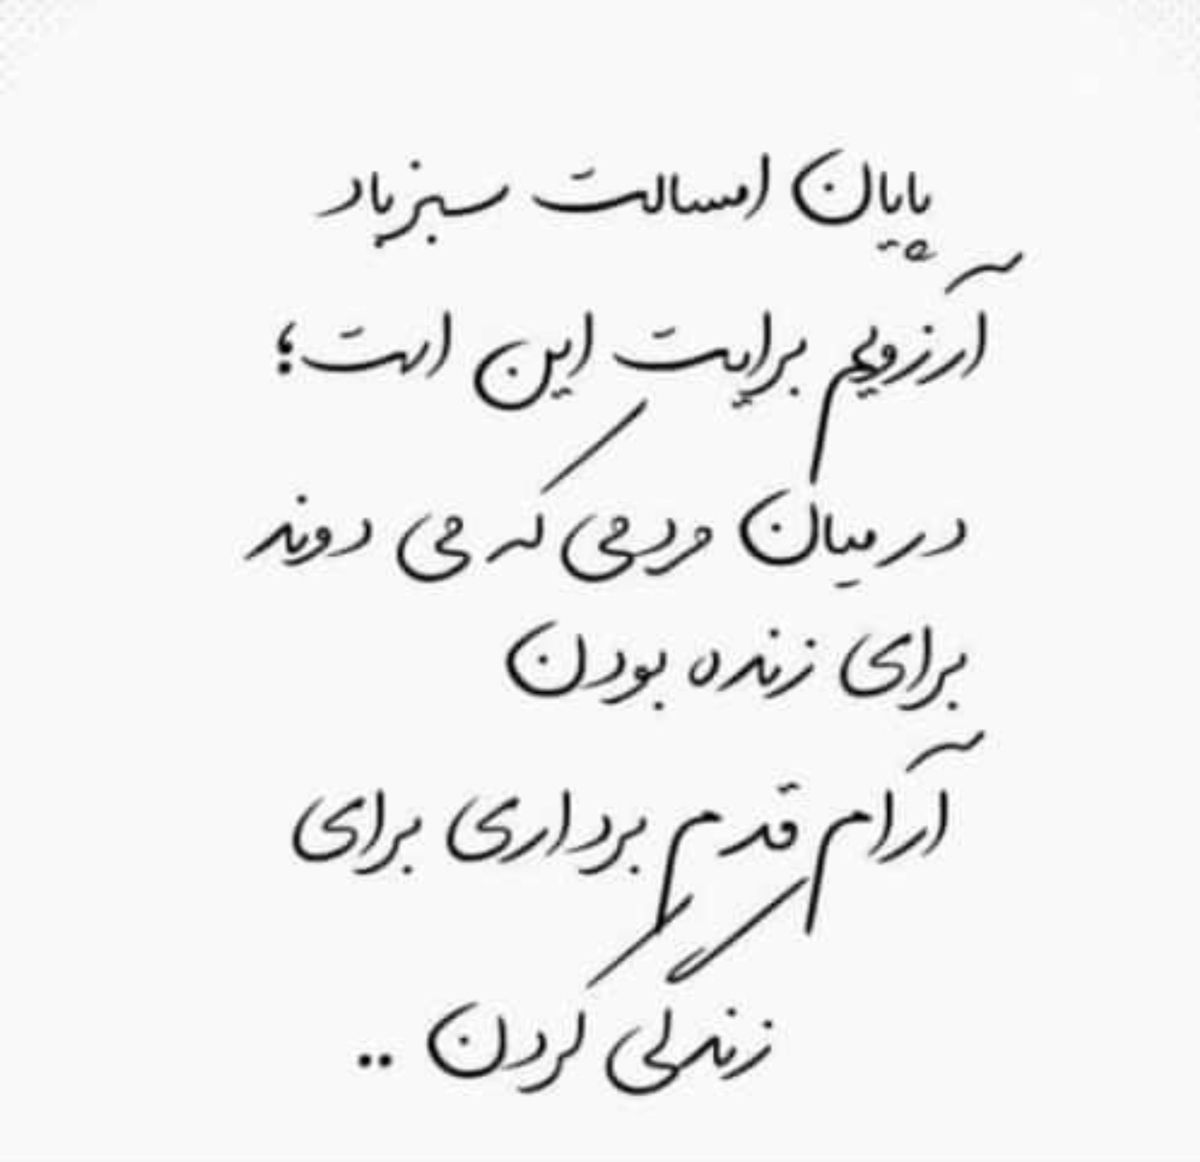 Pin By Nasrin Mehrali On سال نو In 2021 Good Morning Quotes Text Pictures Self Love Quotes